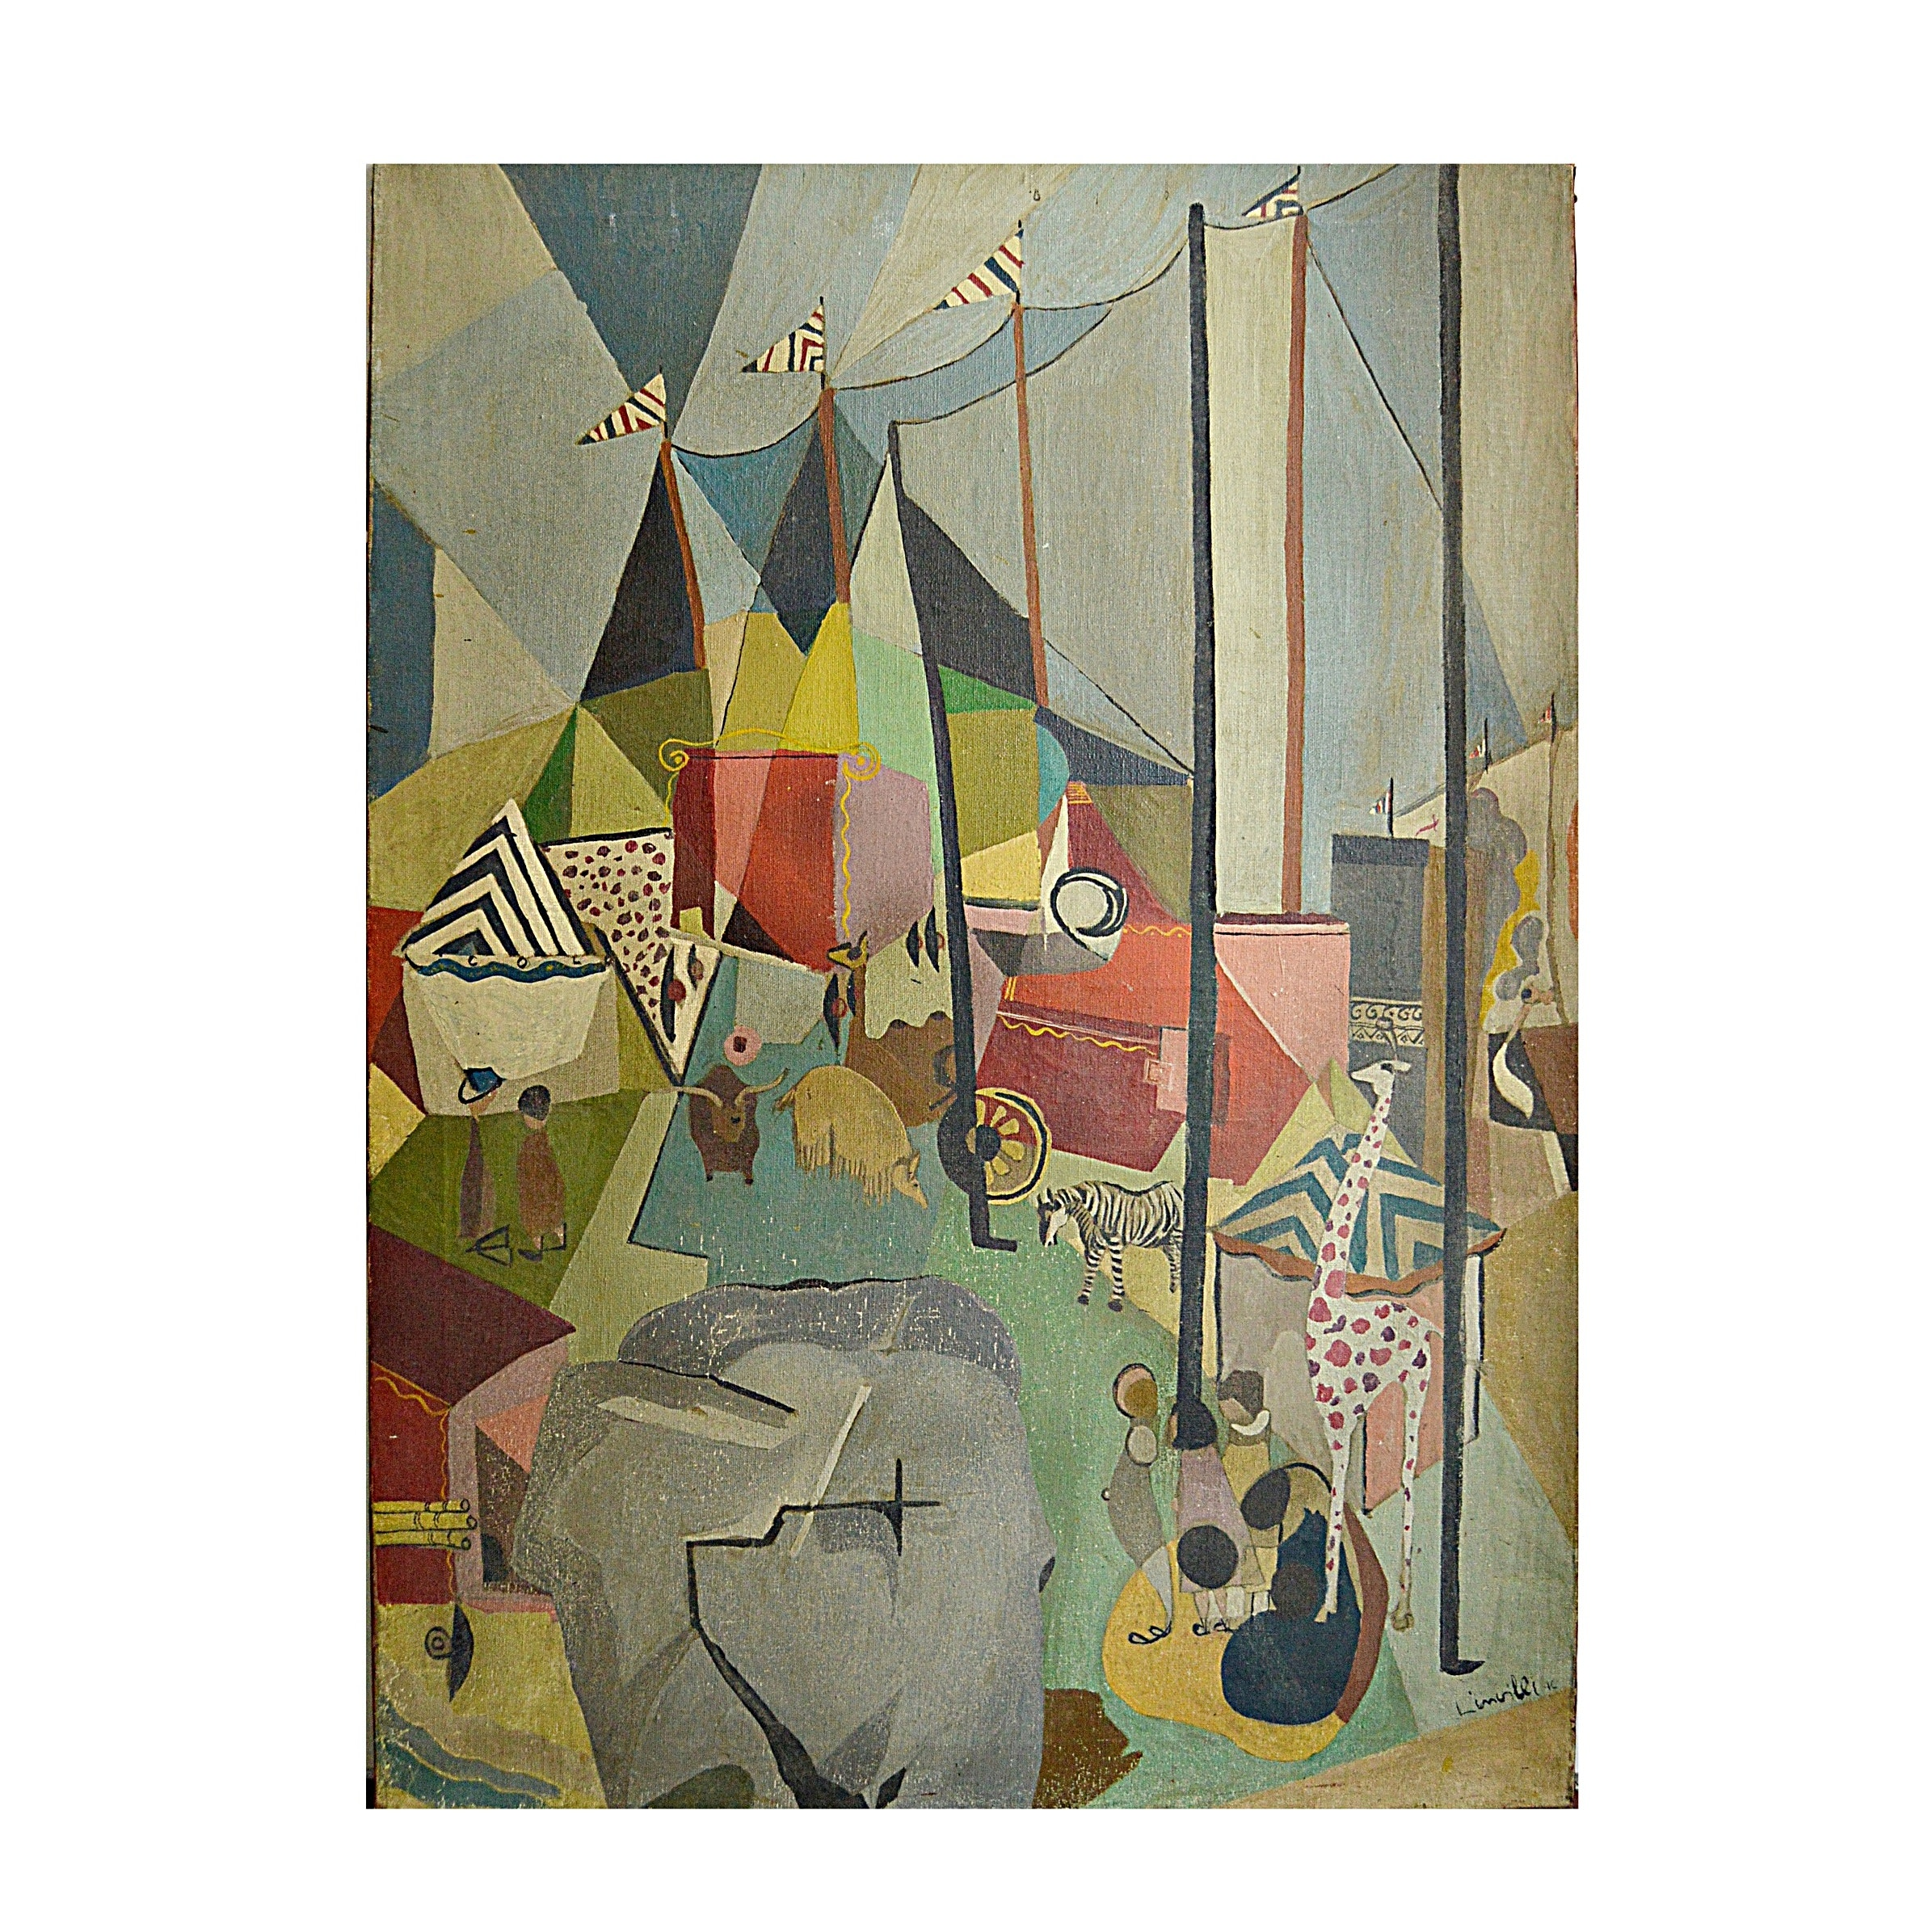 1946 Linnilli Cubist Style Oil on Canvas Circus Painting